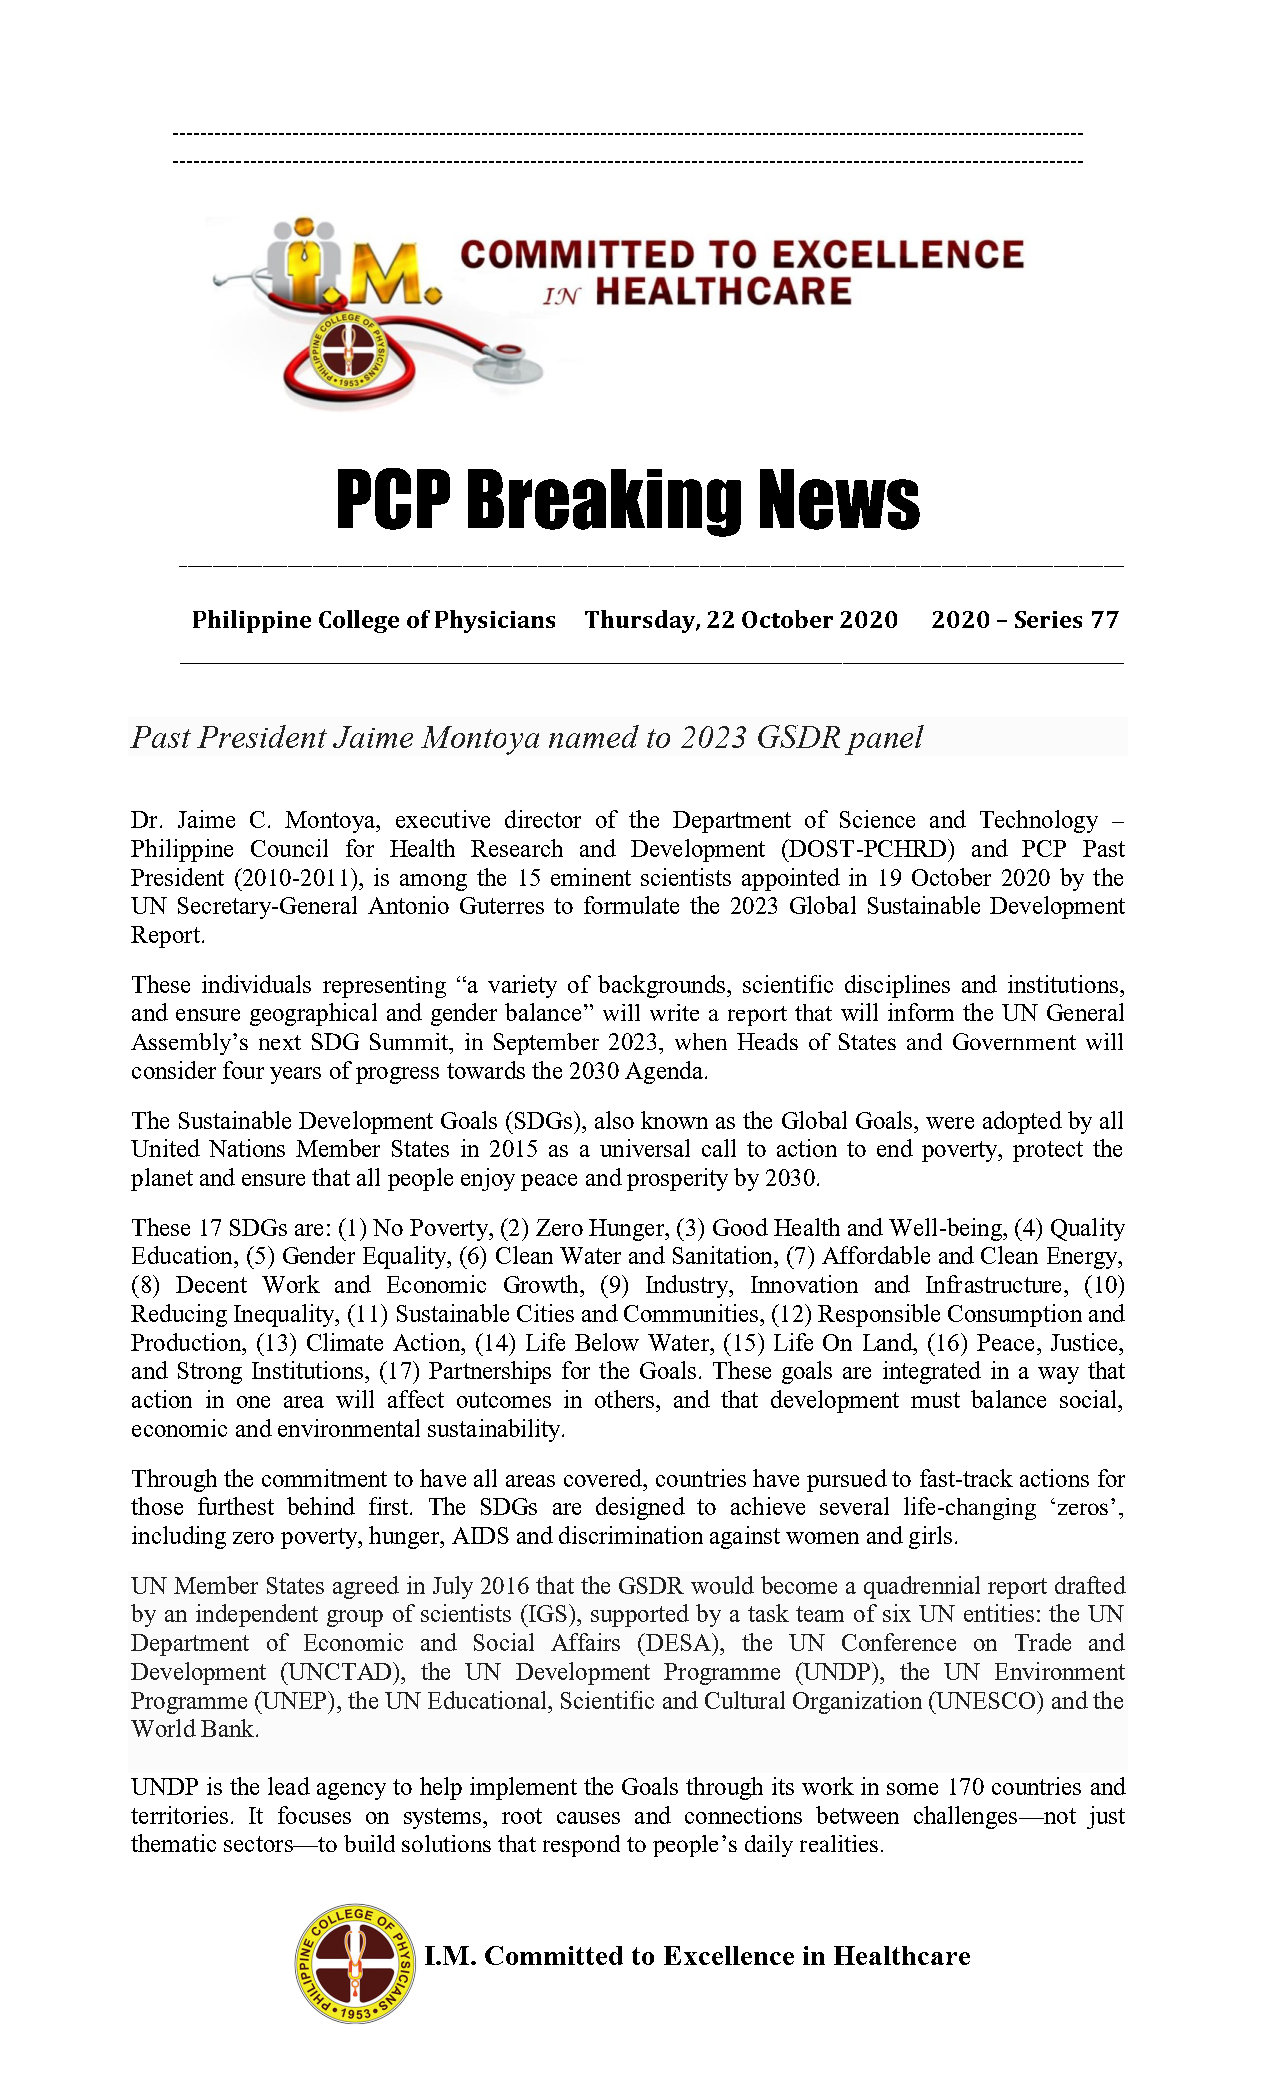 77 2020 pcp breaking news 10222020 Page1